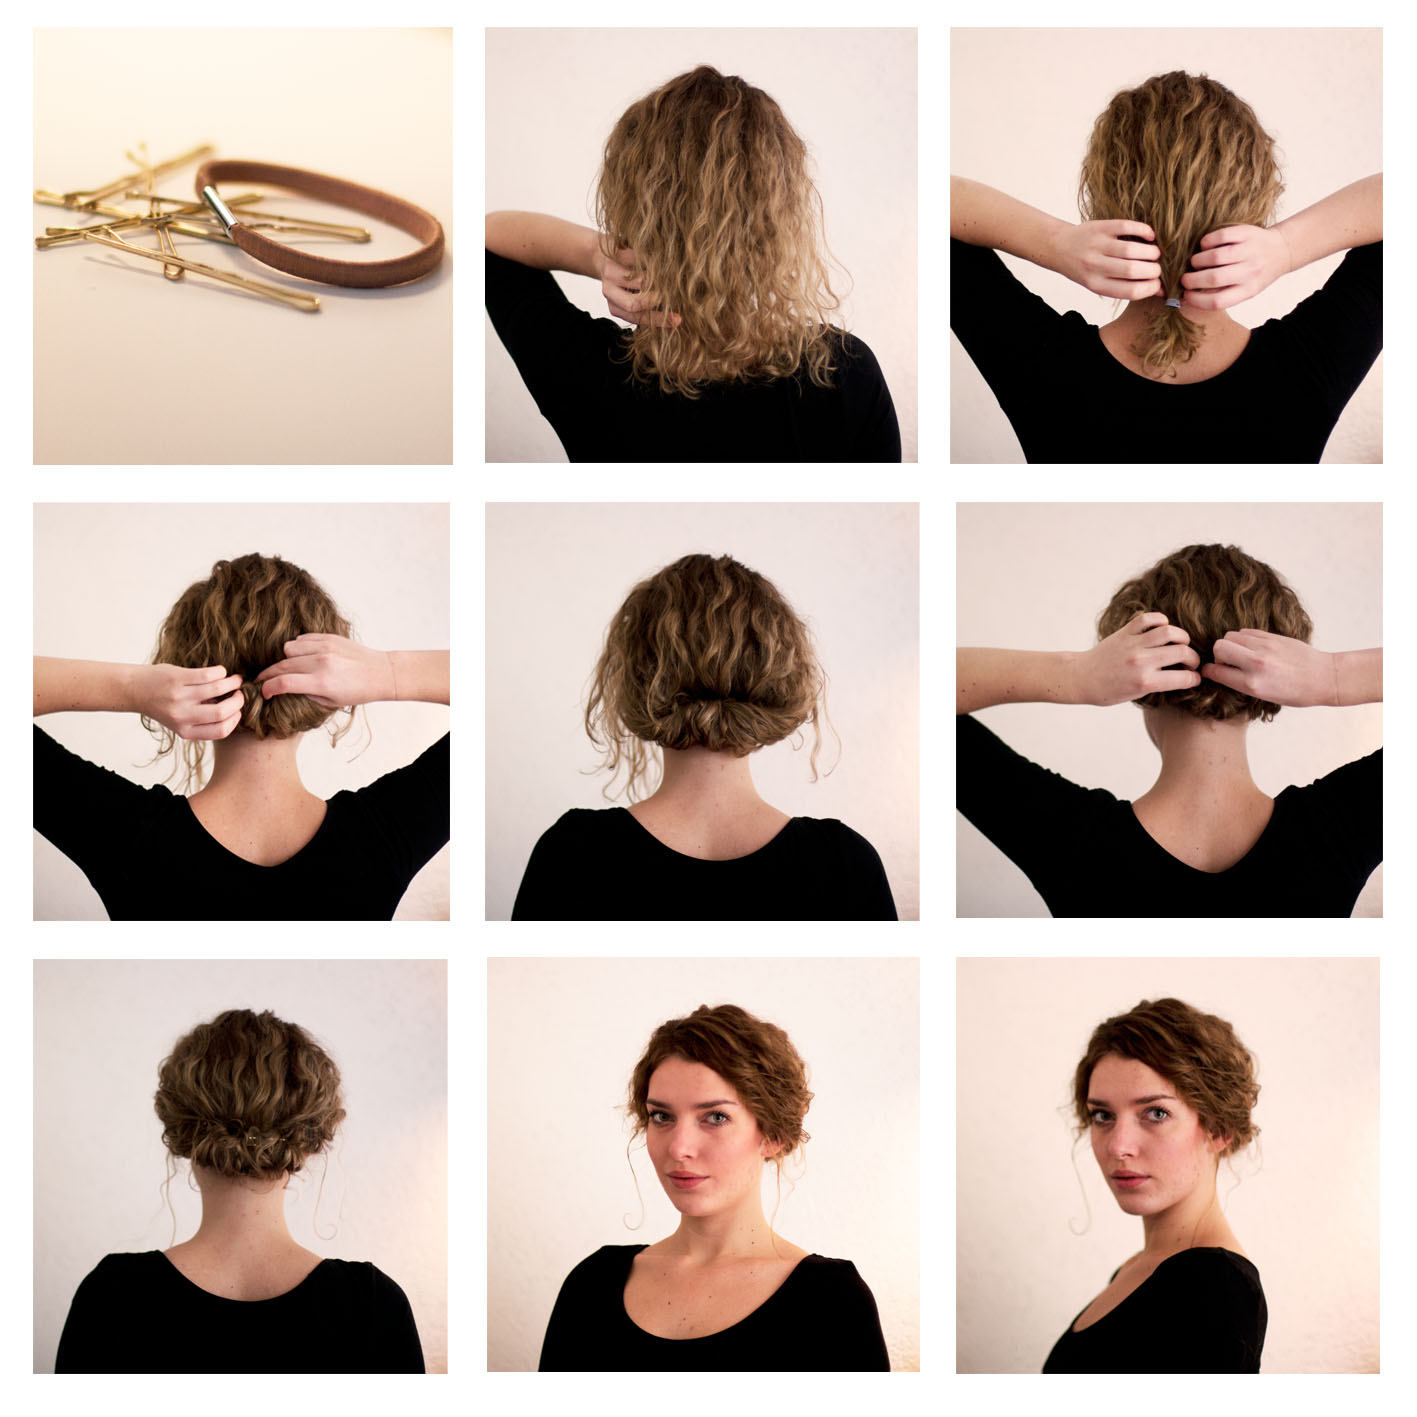 60 Easy Step By Step Hair Tutorials For Long, Medium And